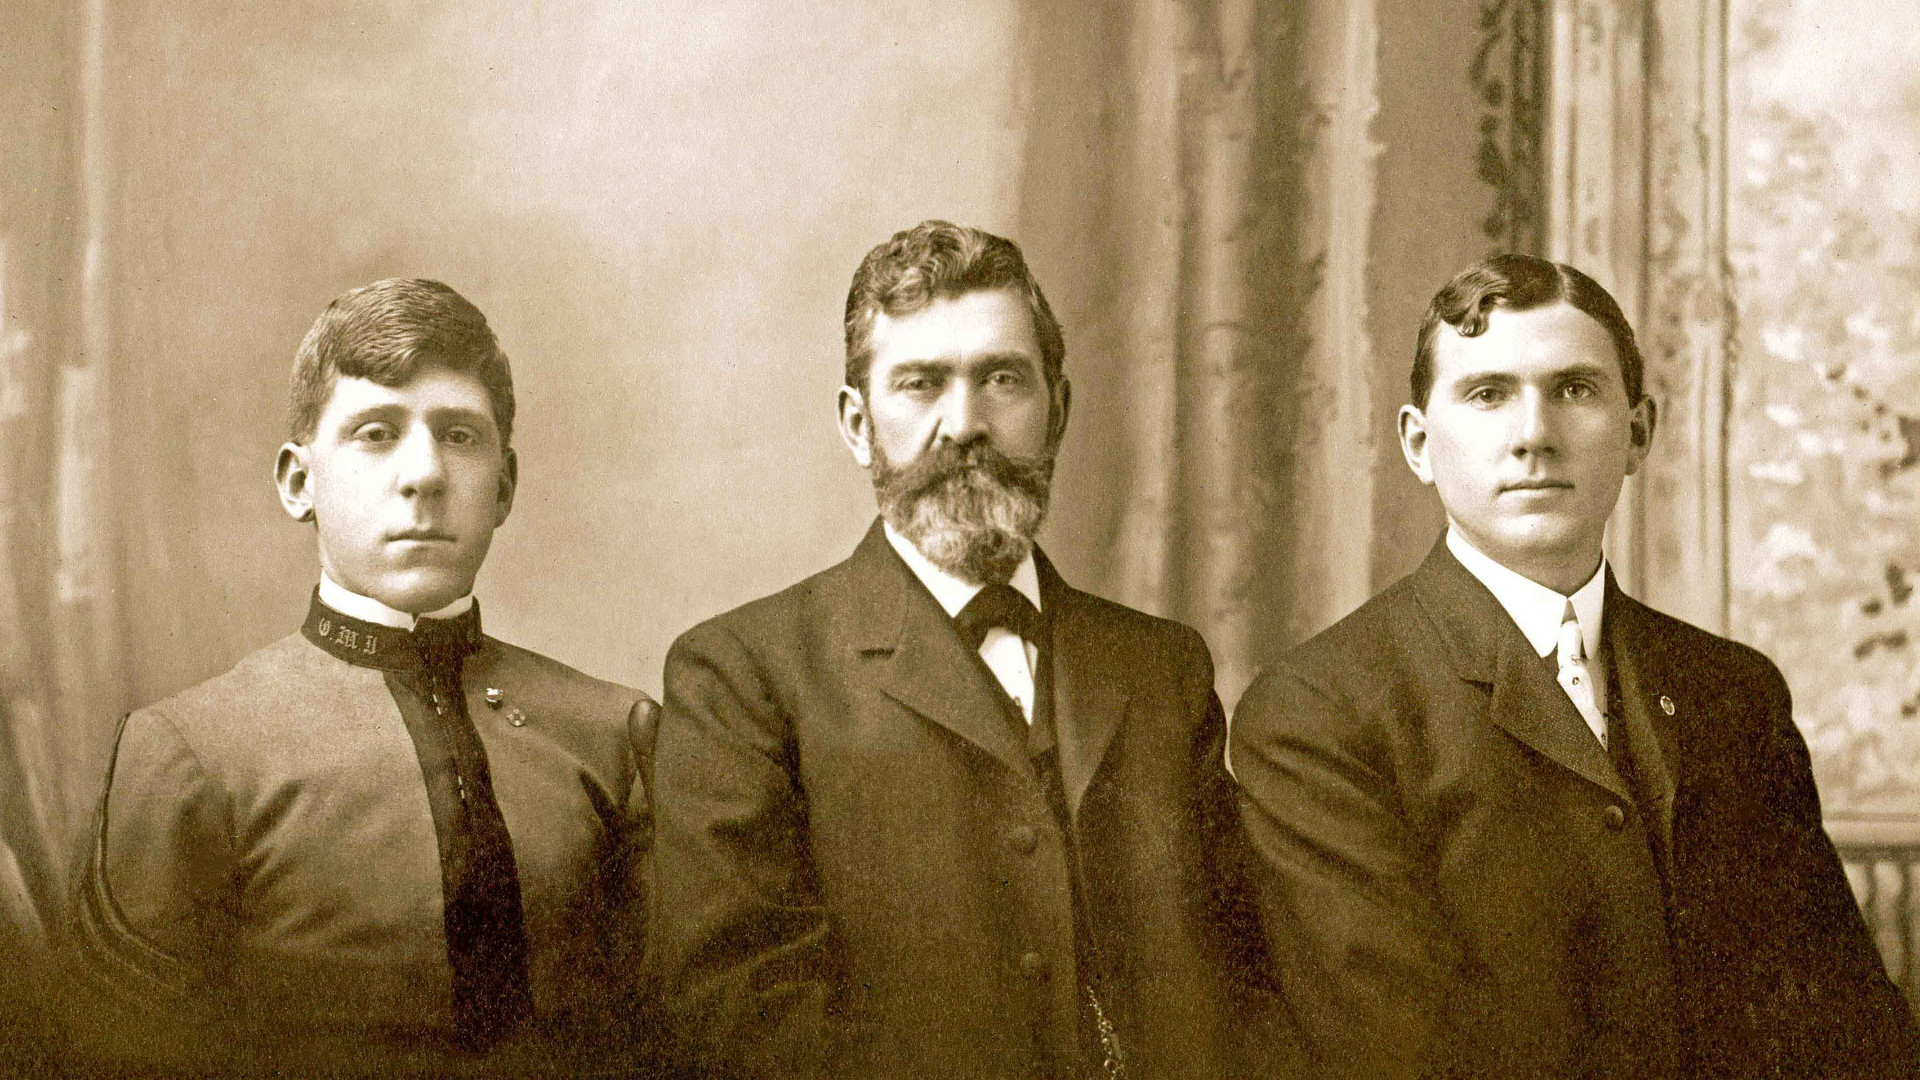 c. 1903. William Riedlin, Sr. and Sons, Walter F. Riedlin and William F. Riedlin, Jr.